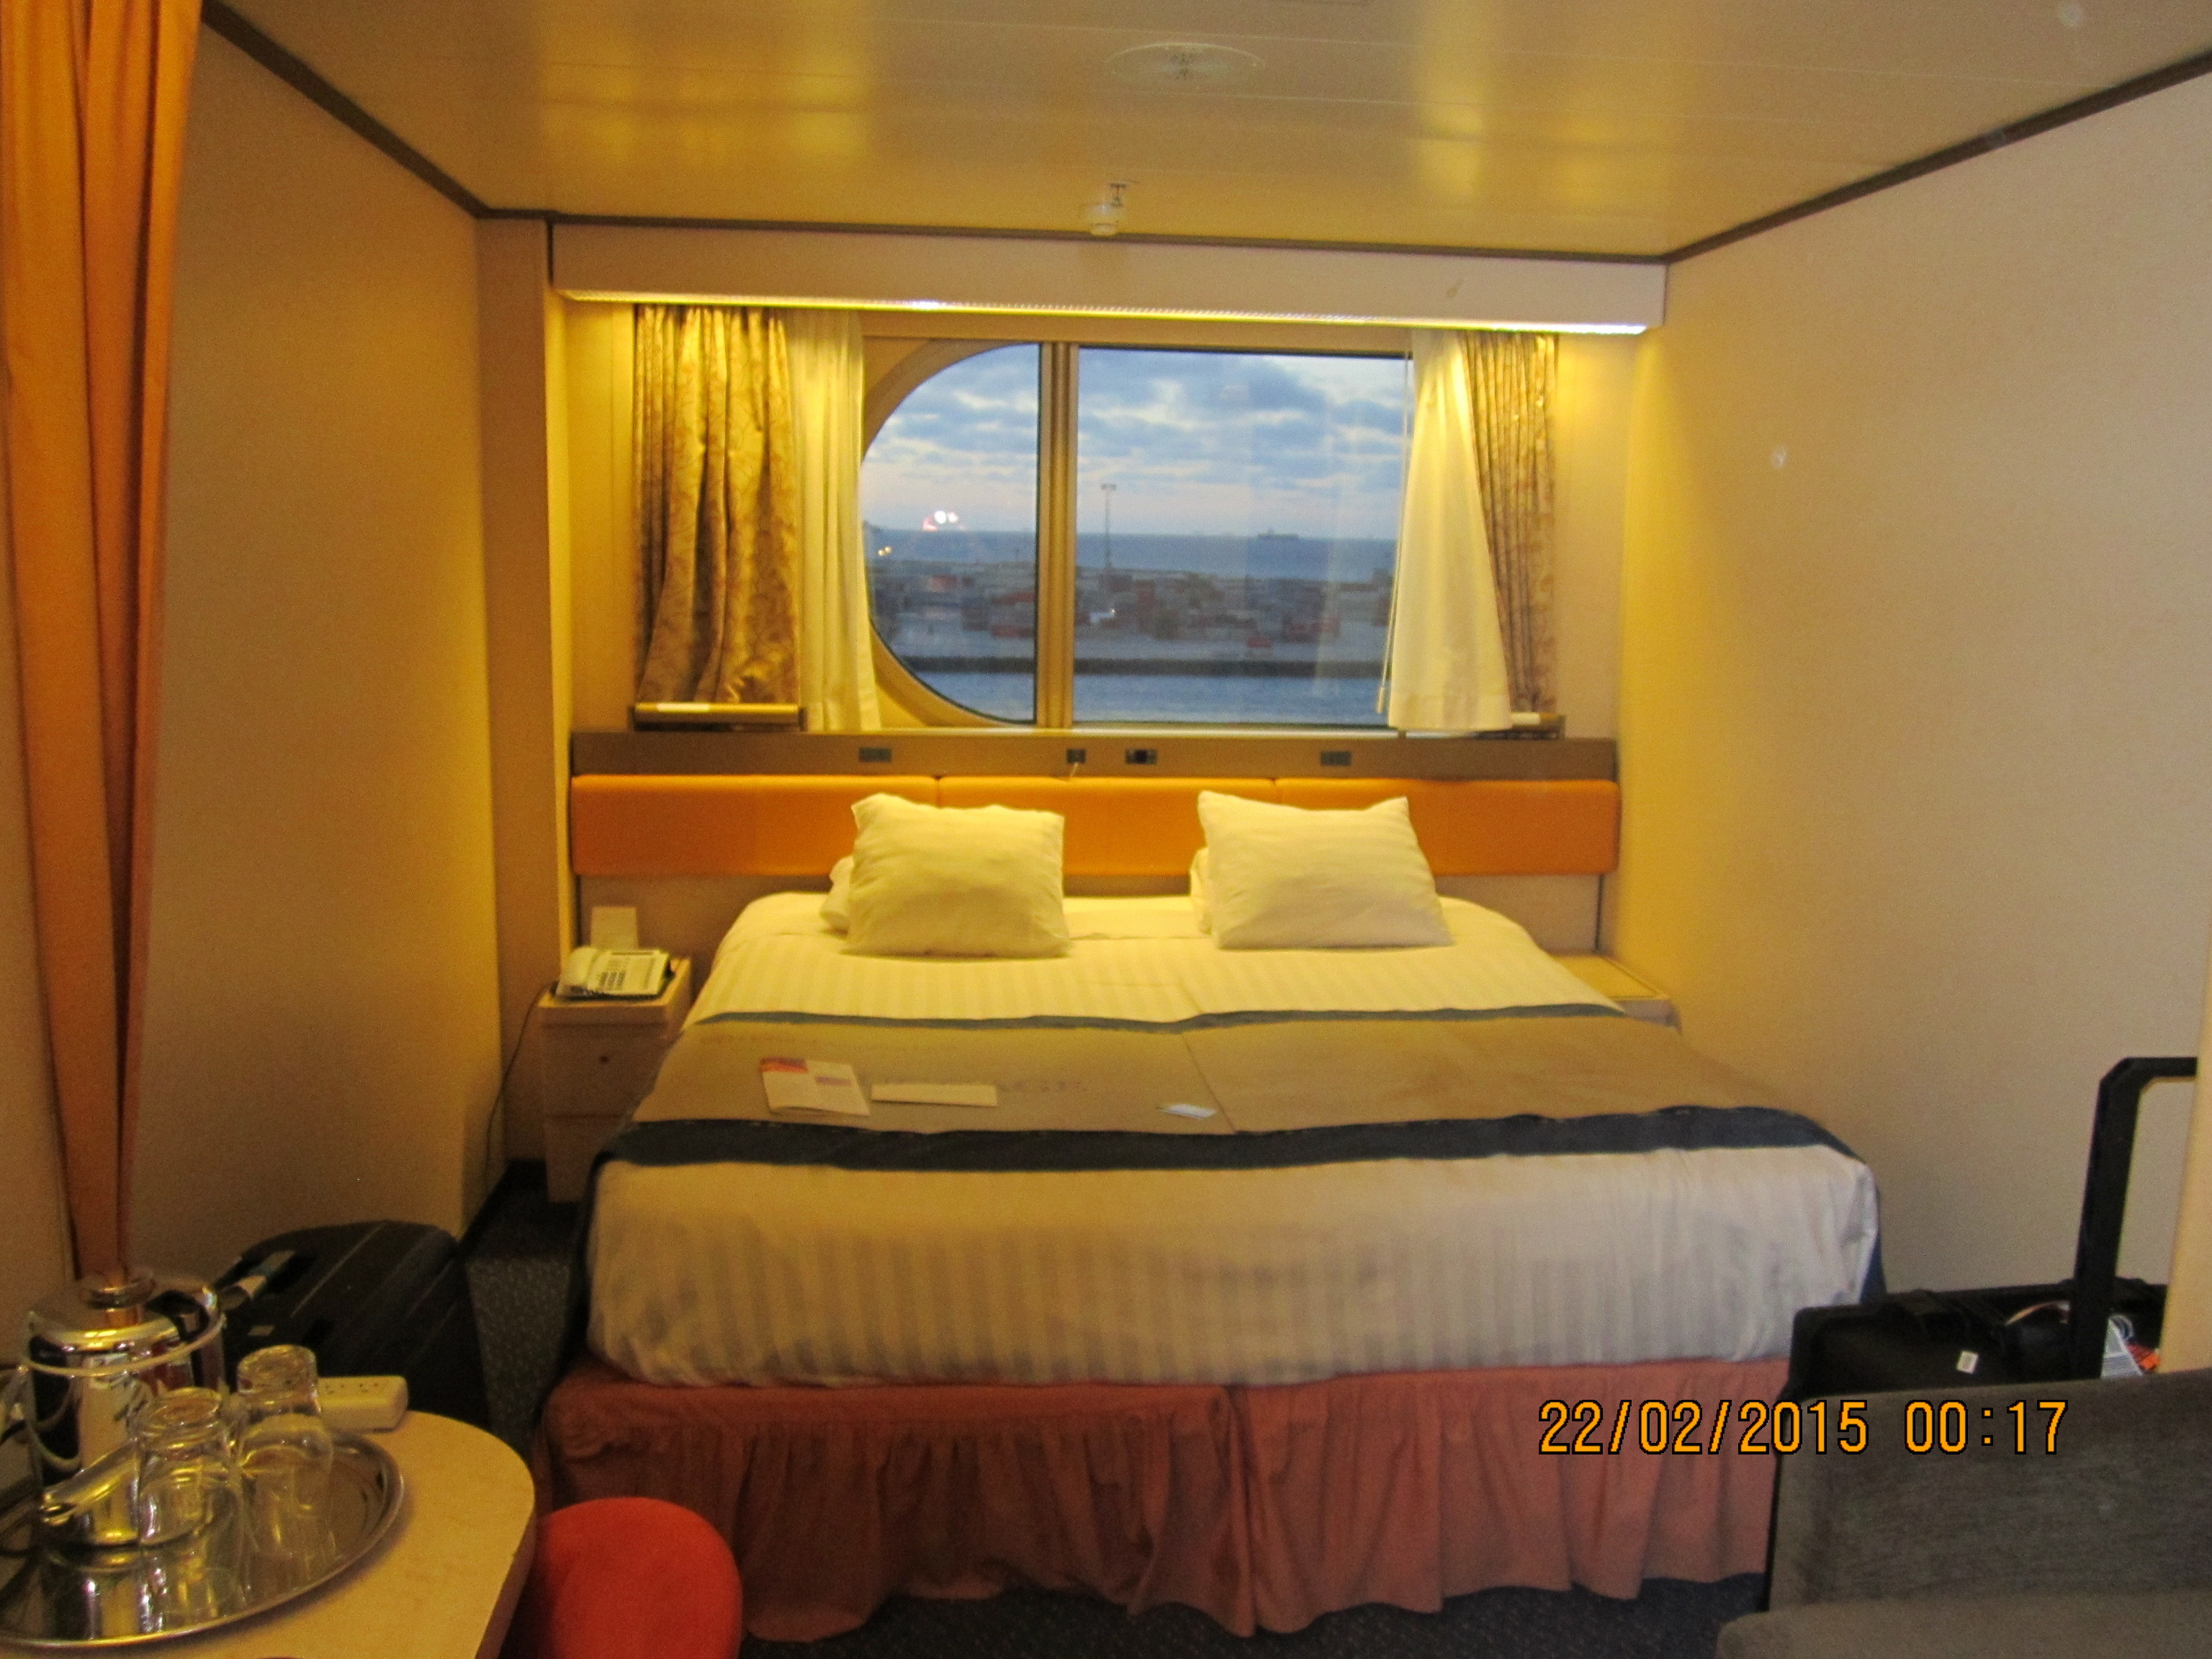 My Room onboard the Holland America Cruise